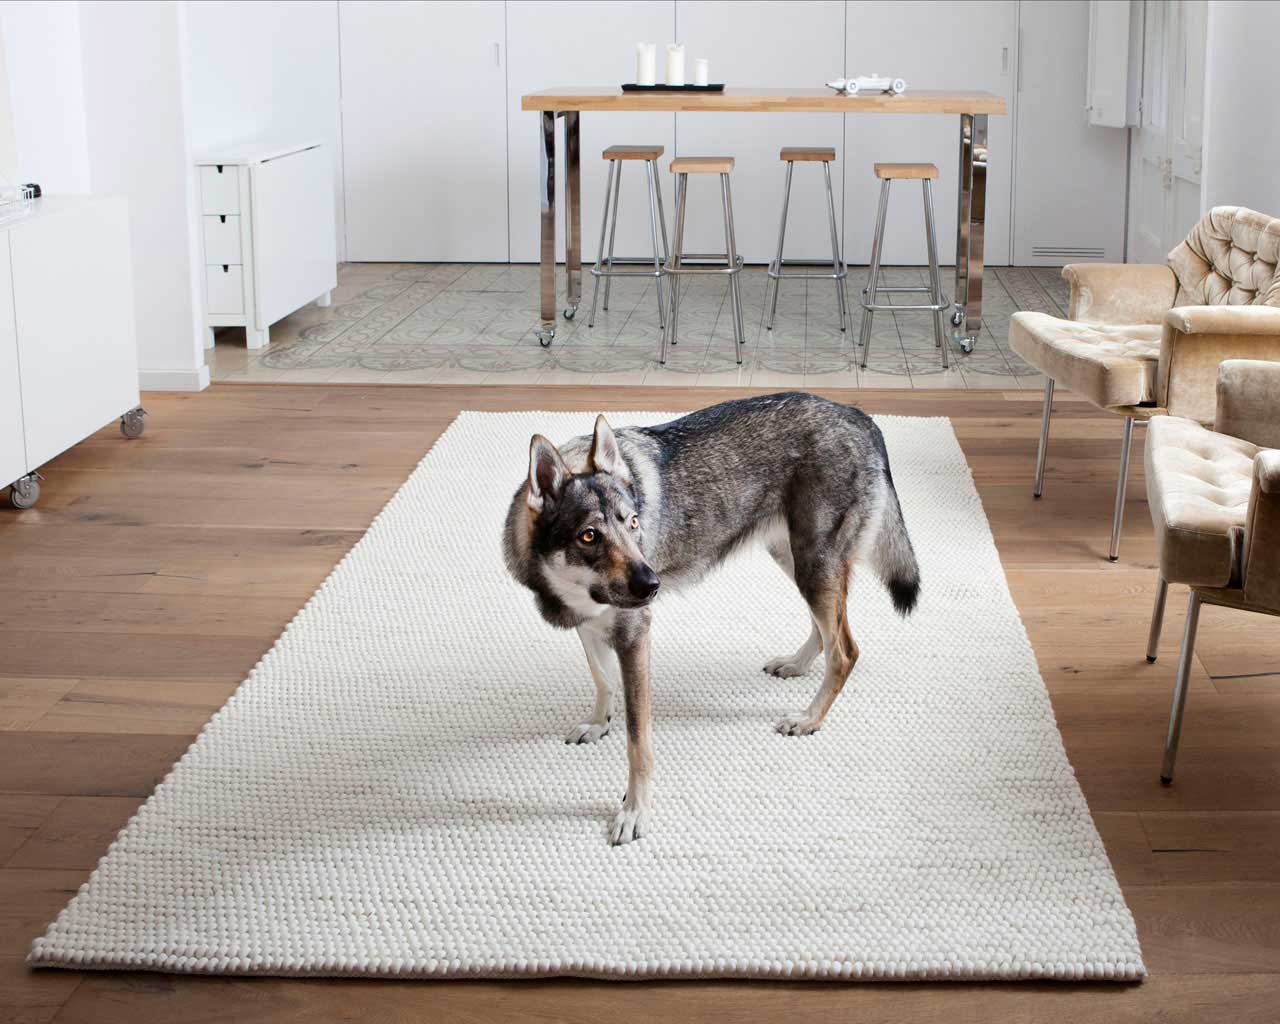 modern kitchen rugs dog grey white brown